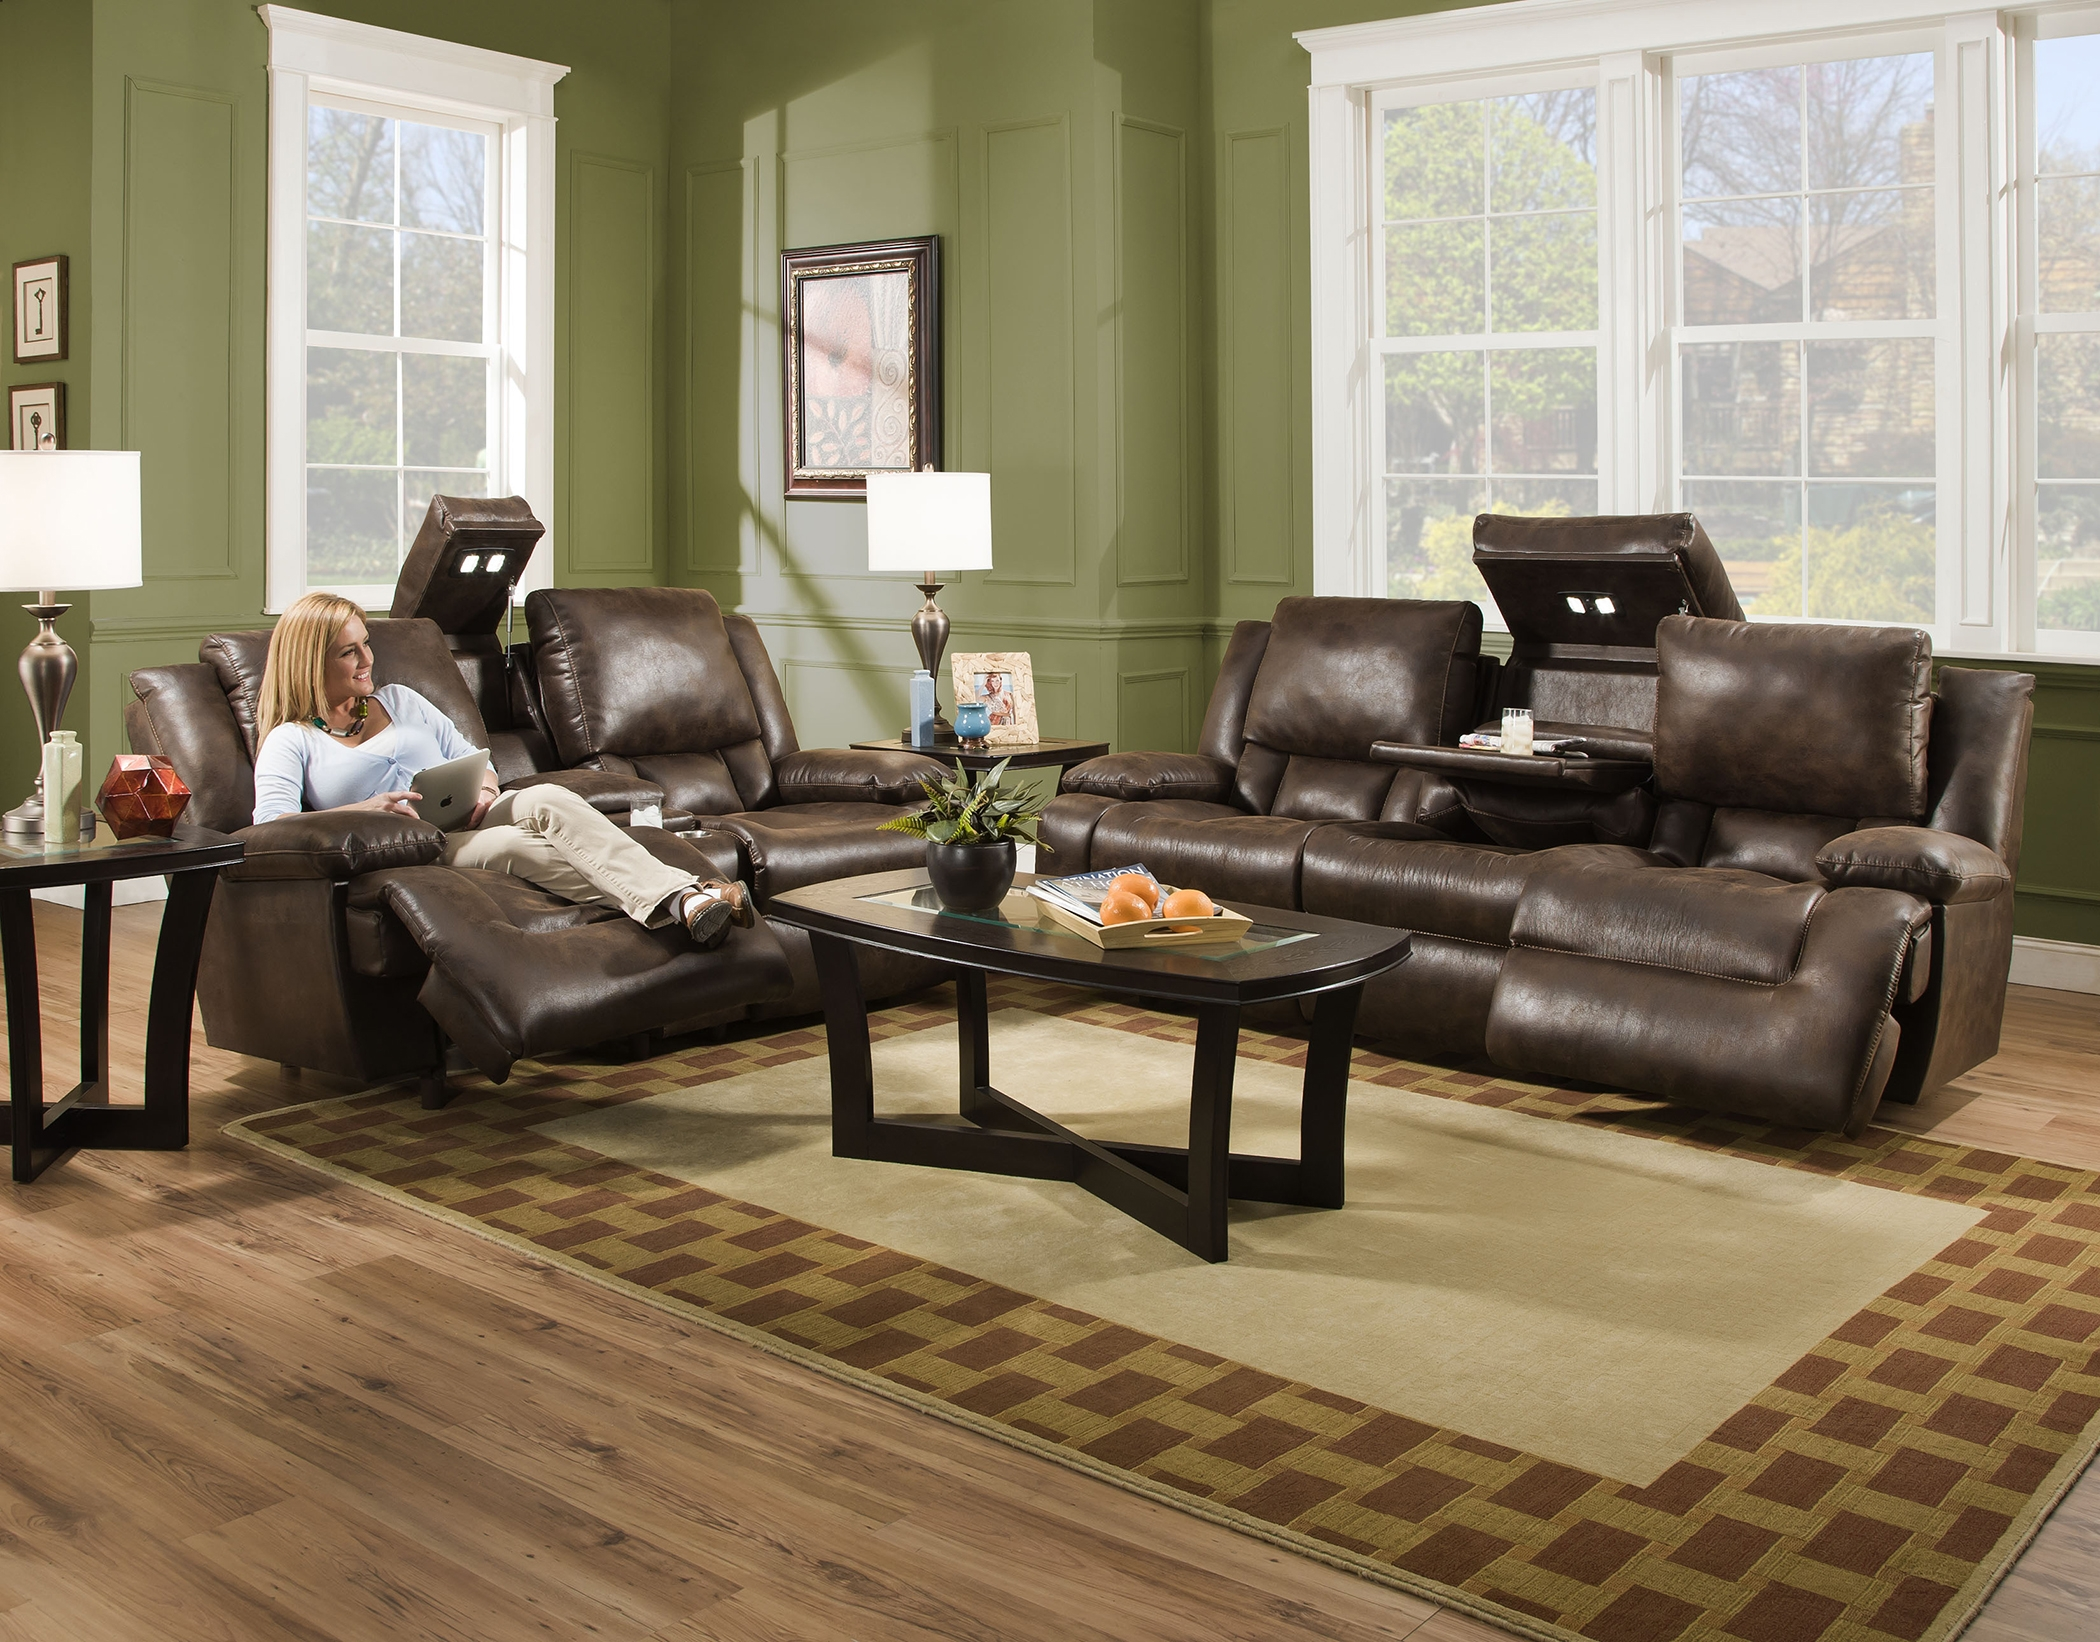 Admirable Excalibur 743 Reclining Sofa W Power Headrest Sofas And Caraccident5 Cool Chair Designs And Ideas Caraccident5Info